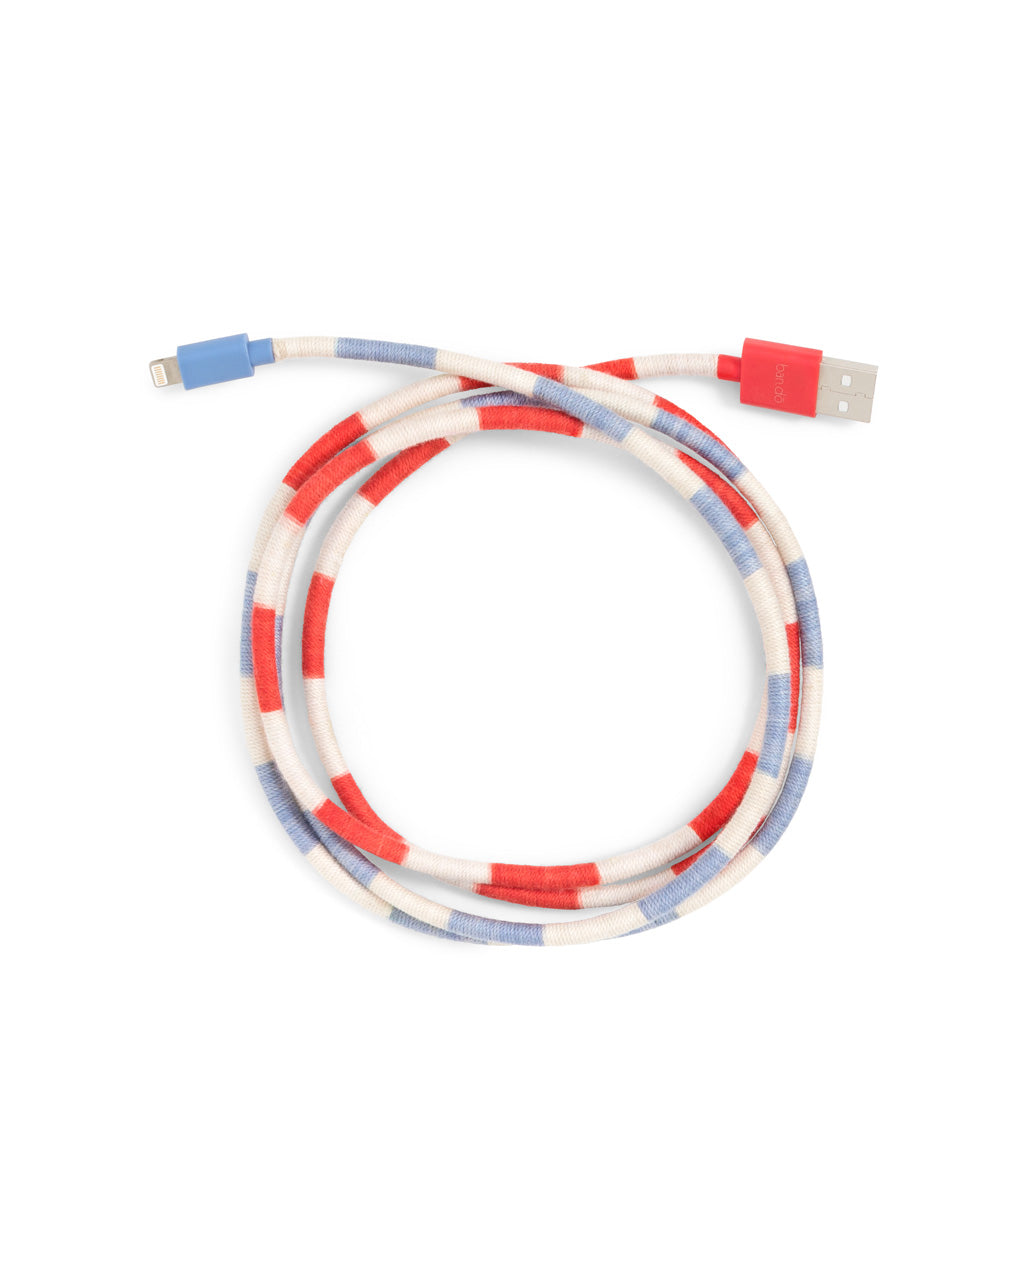 Red, White, & Blue, club stripe colored phone charging cord.